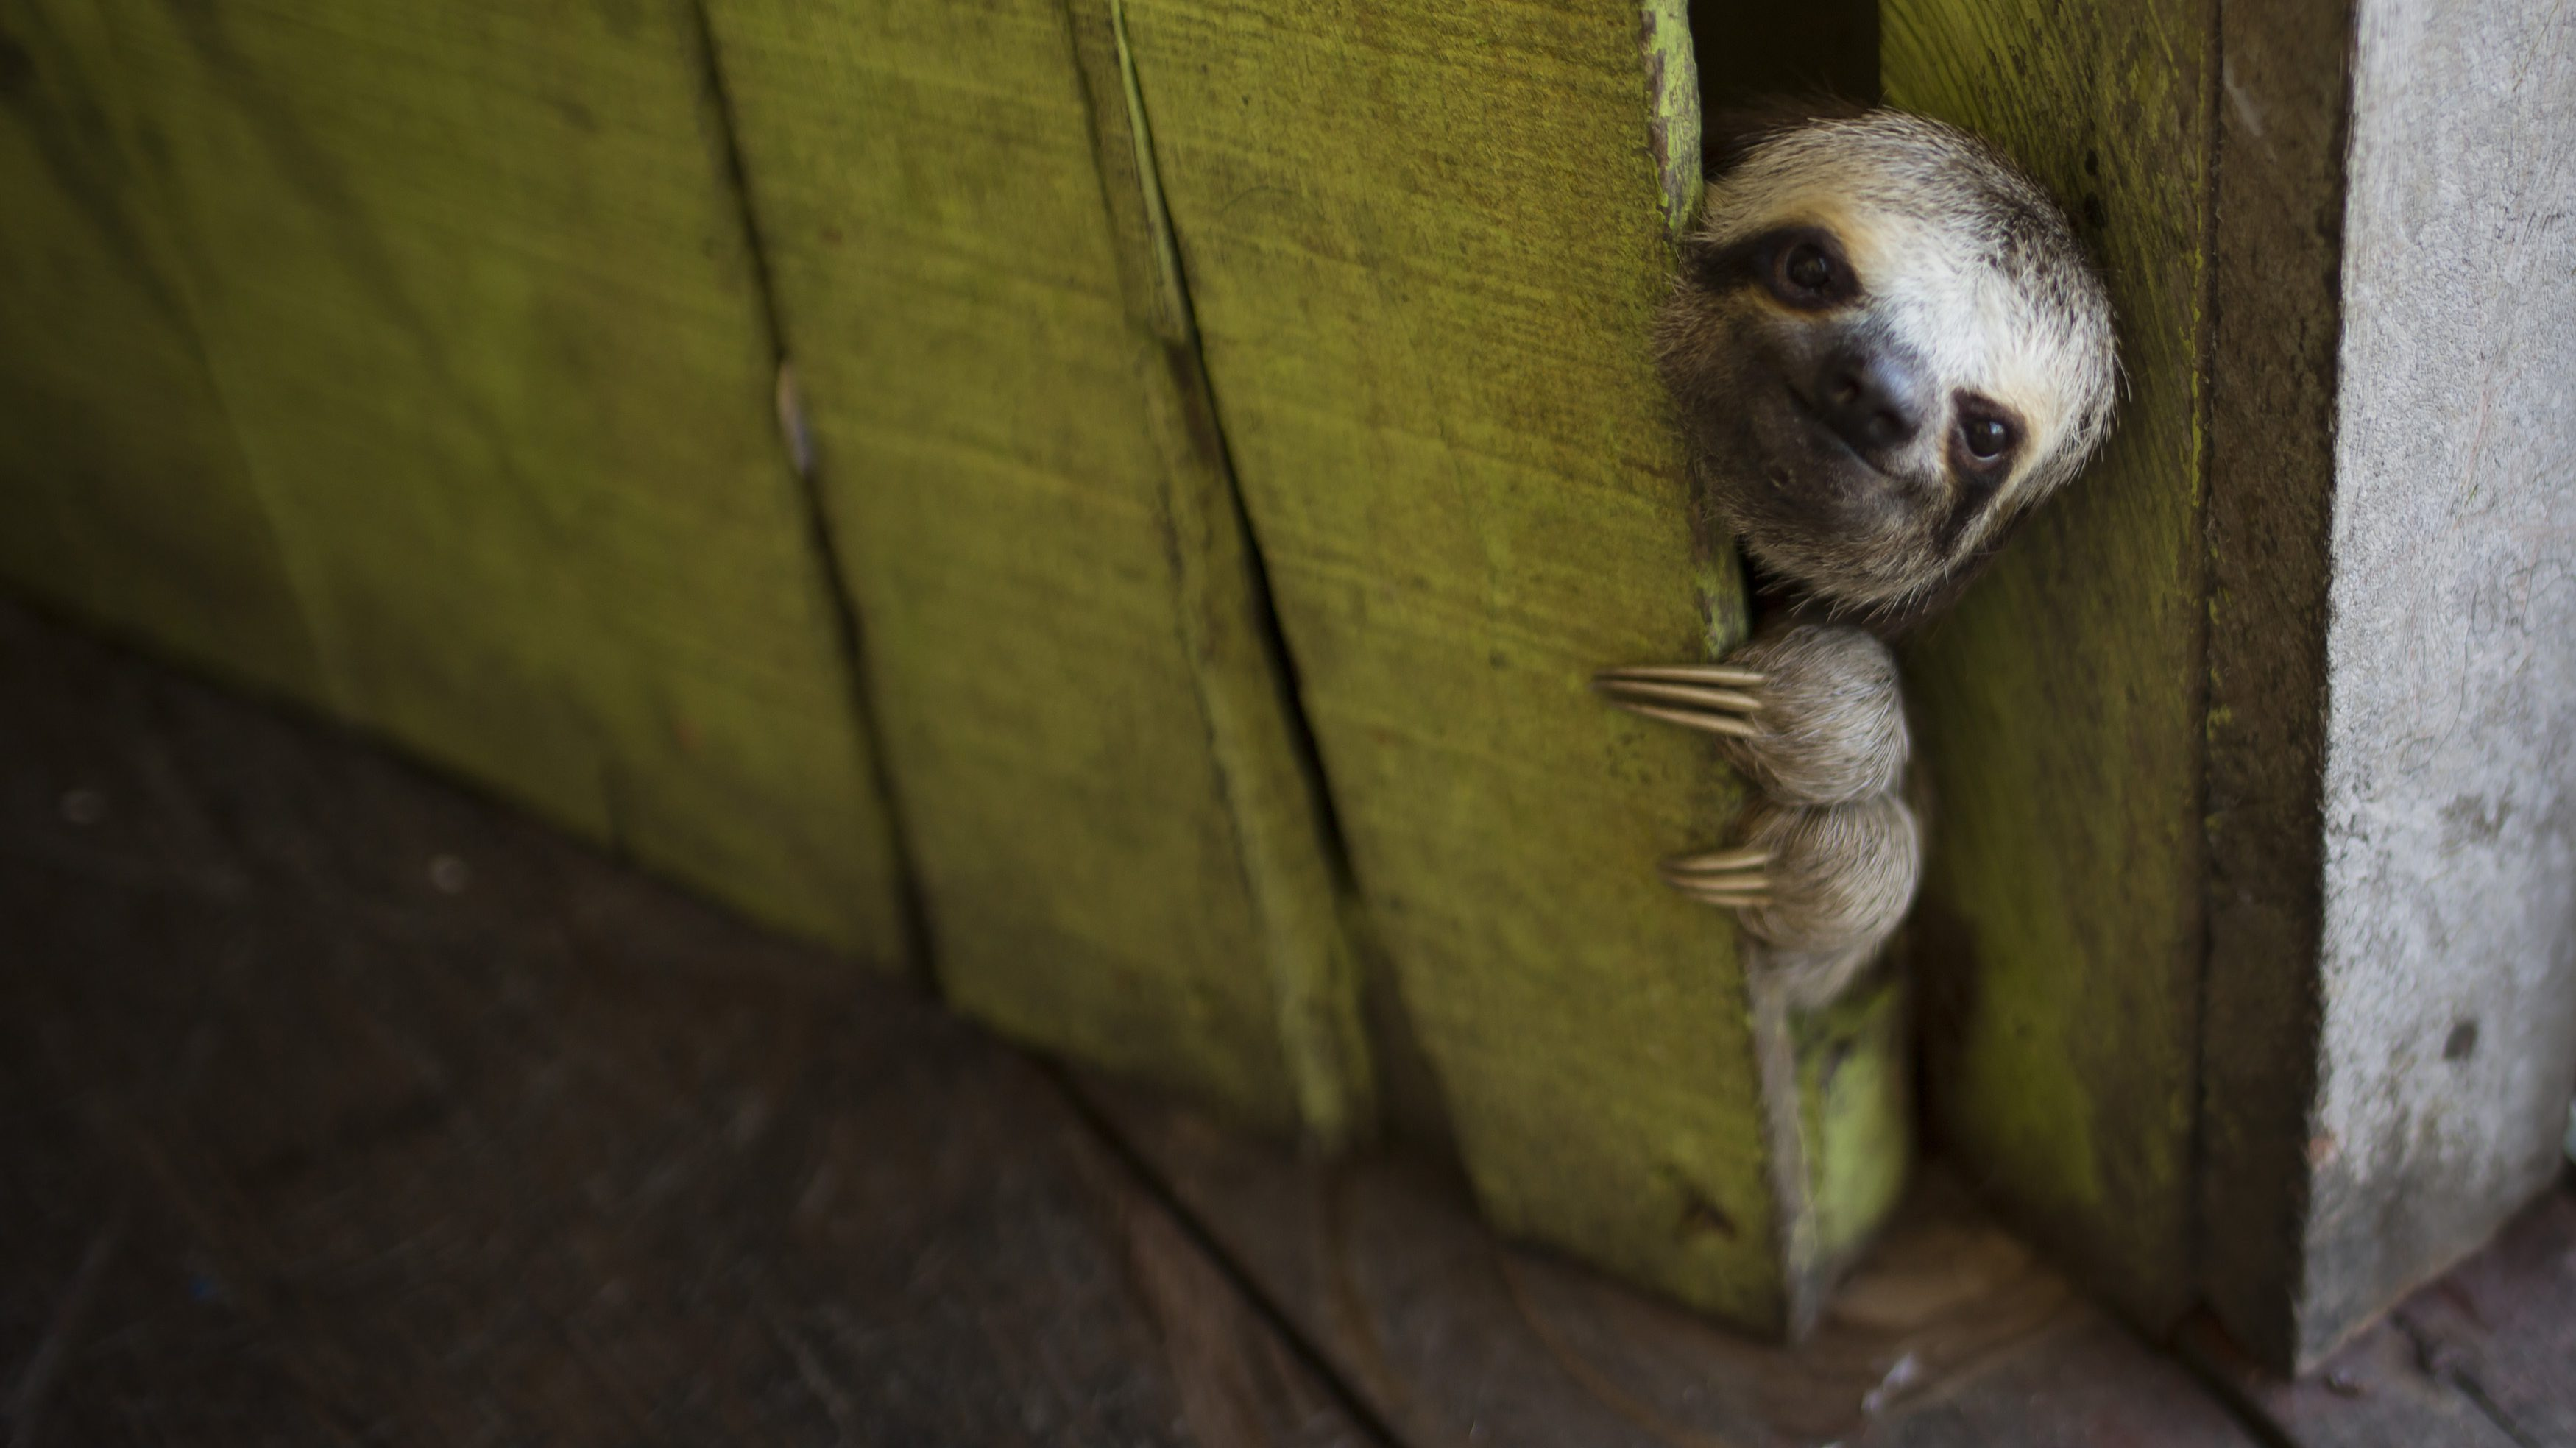 FILE - In this May 20, 2014 FILE photo, a female baby sloth peeks out from behind a door on a floating house in the 'Lago do Janauari' near Manaus, Brazil. The sloth was captured by the owner of the floating house, who makes a living showing local fauna to visitors. In an an attempt to prevent any harm to the animals he says he only keeps each animal for a few weeks before returning it to it's natural habitat. (AP Photo/Felipe Dana, File)